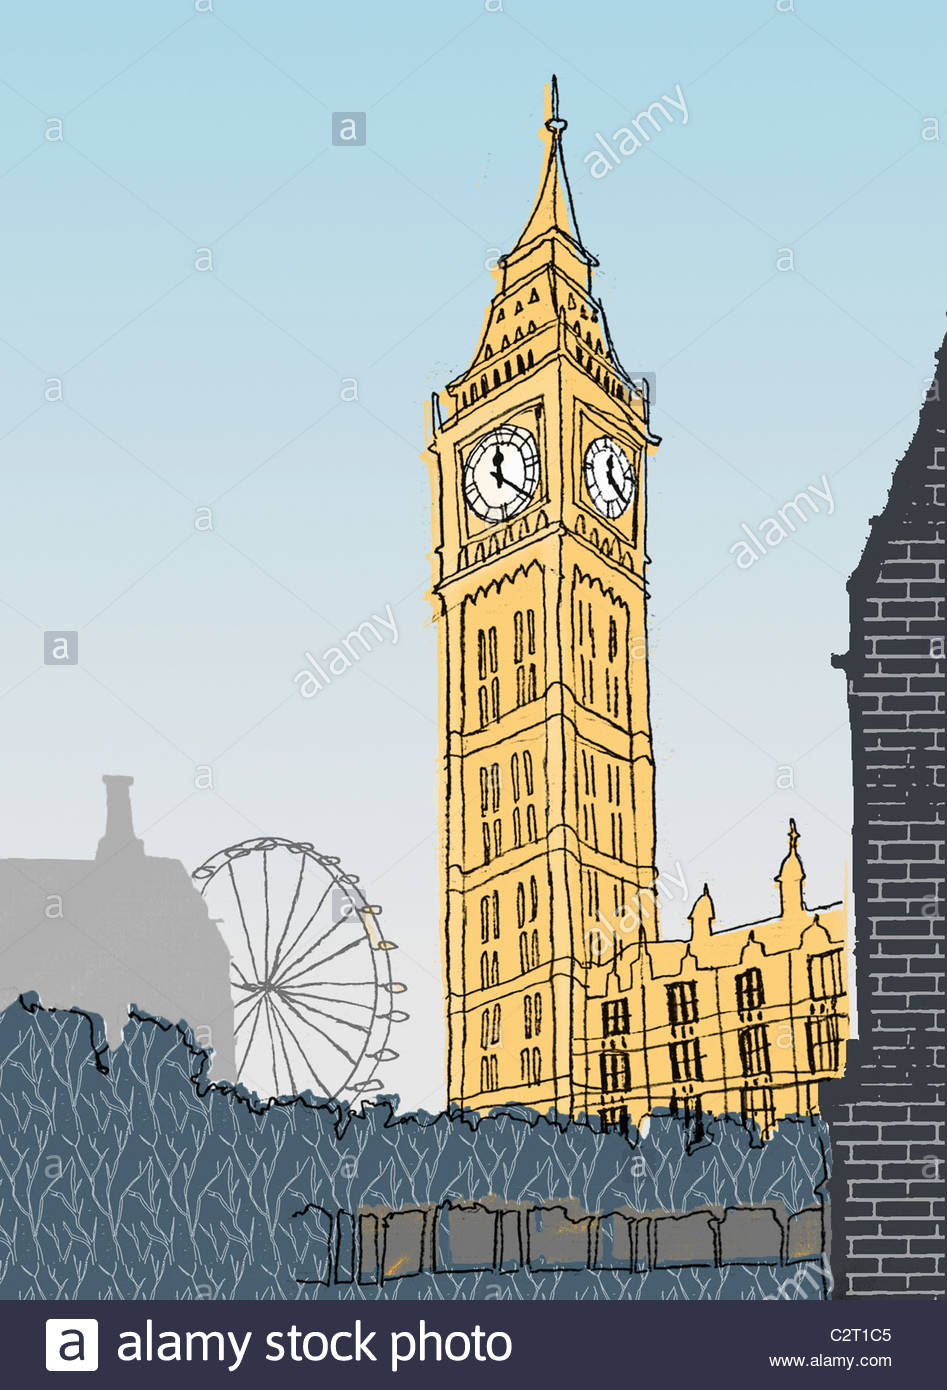 Big Ben, London Eye and Houses of Parliament - Stock Image